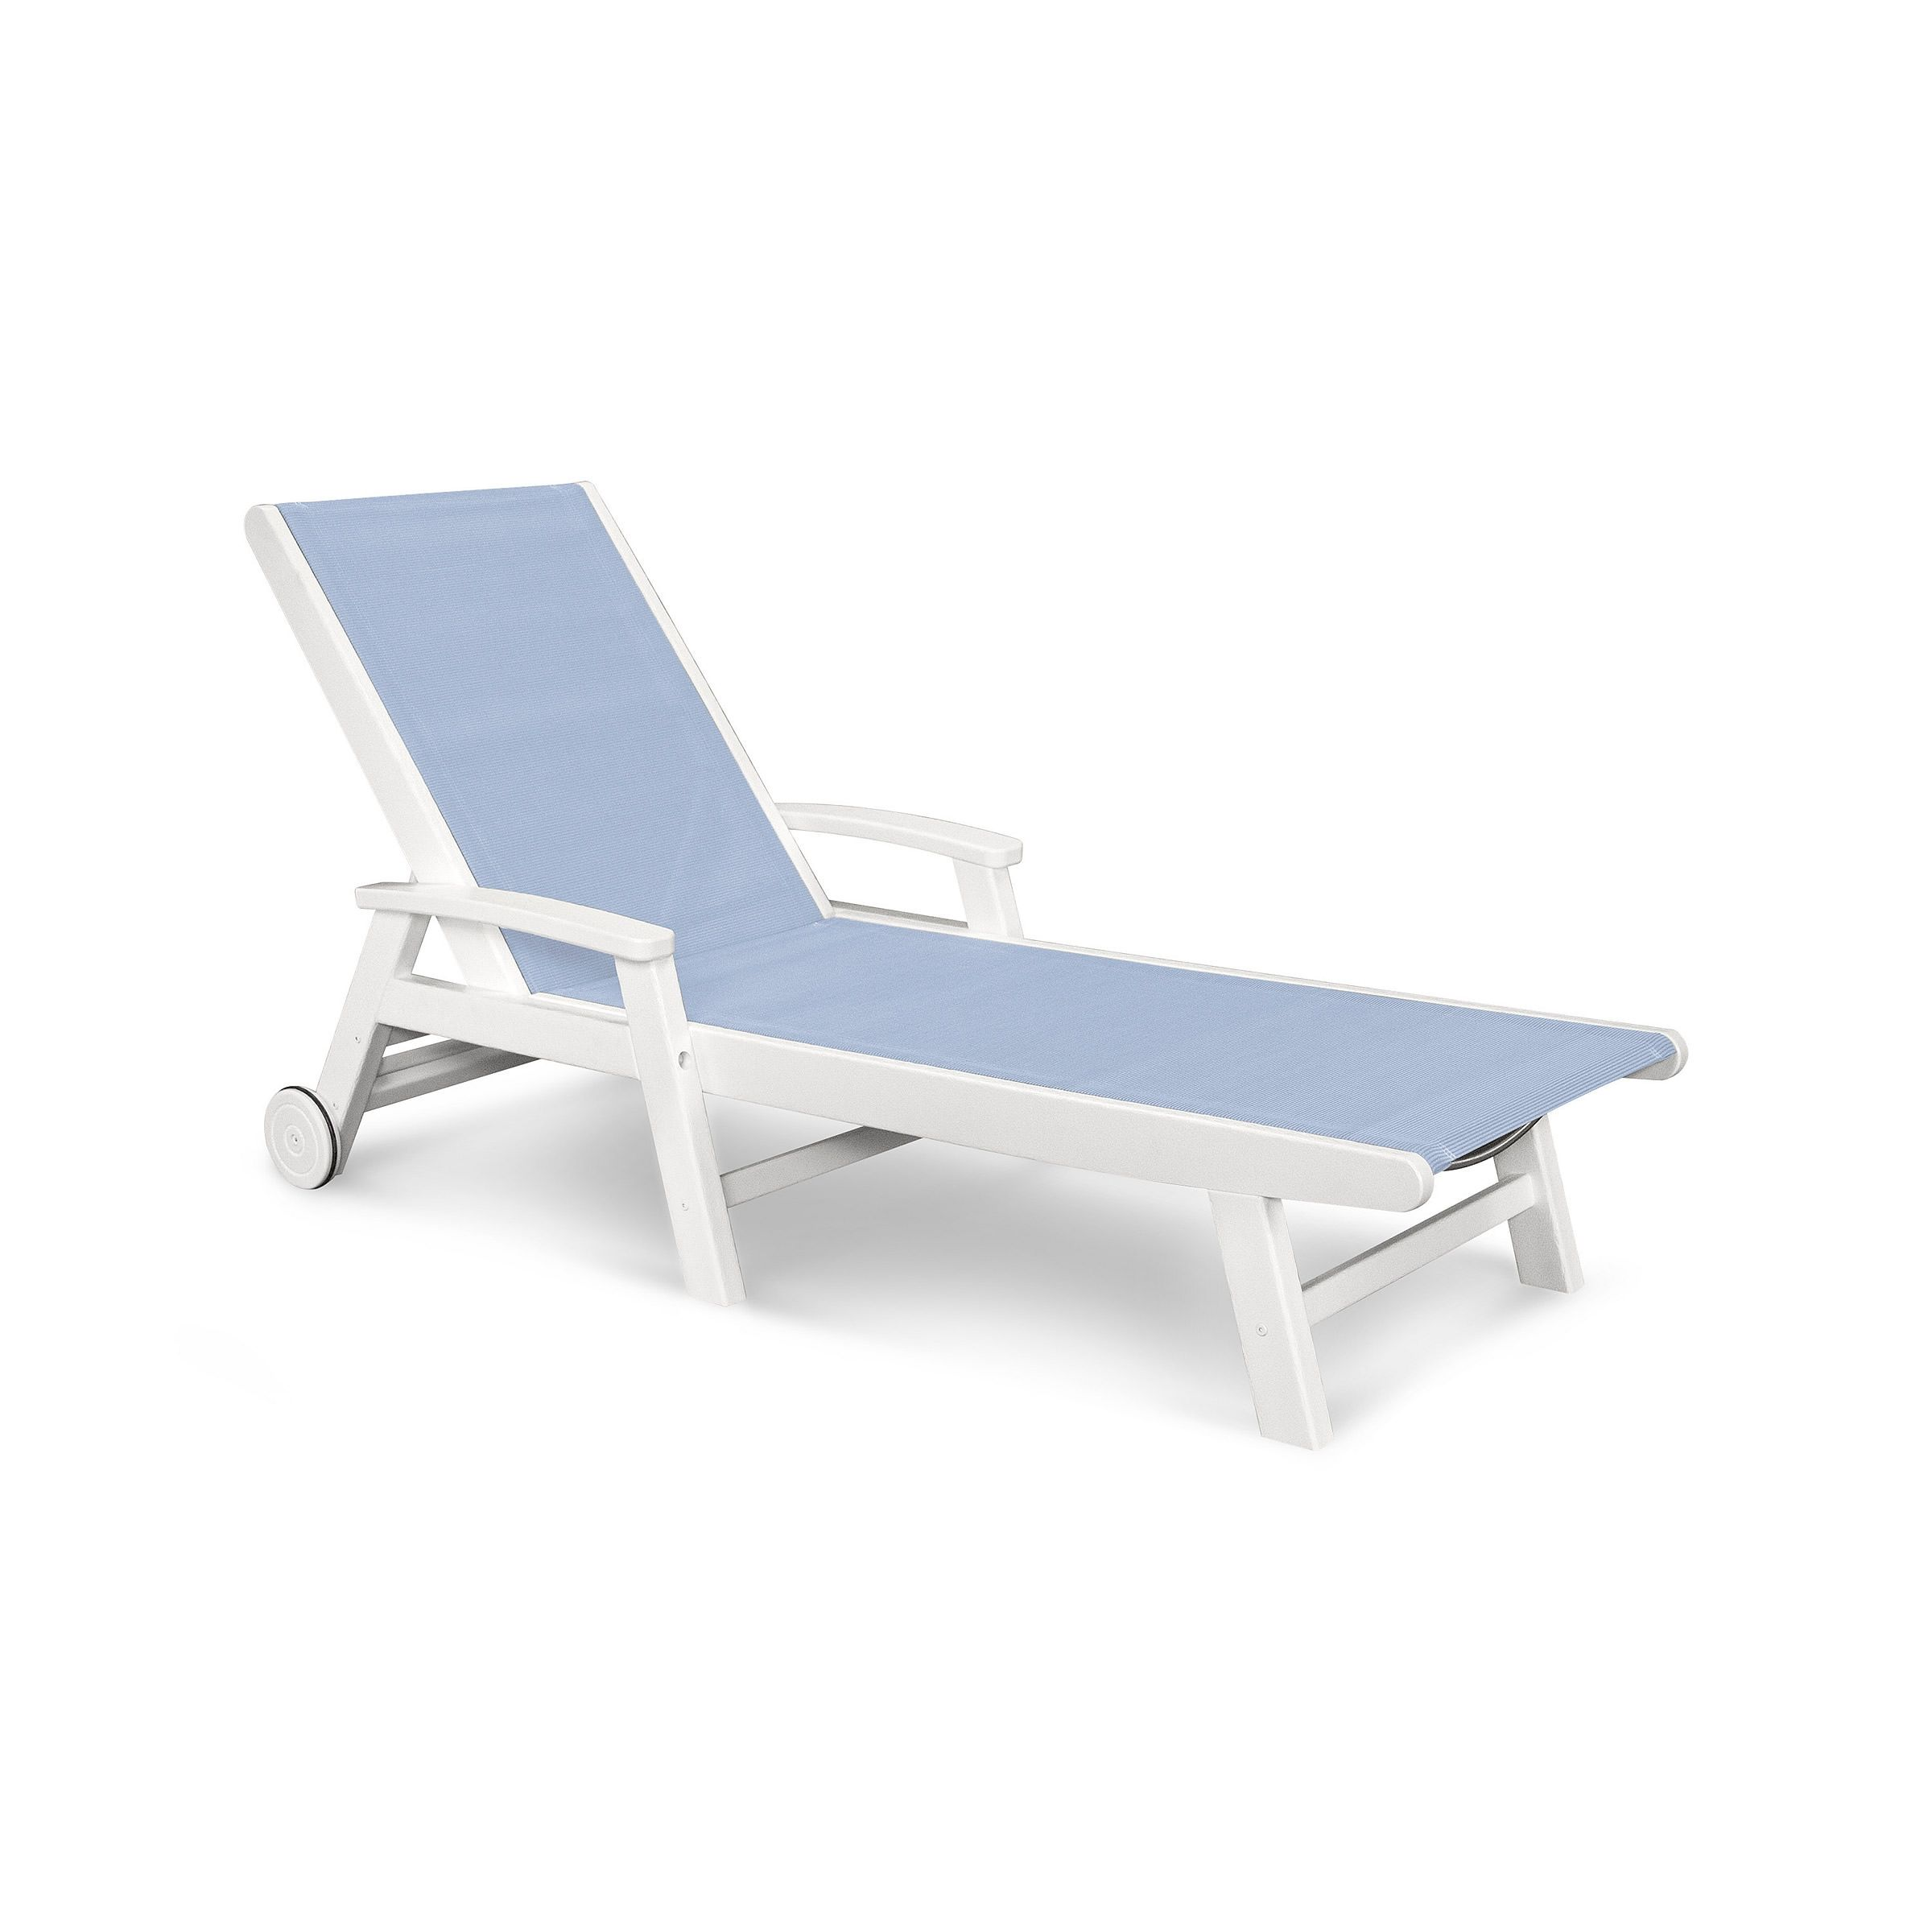 The POLYWOOD Coastal Wheeled Chaise Lounge is the perfect marriage